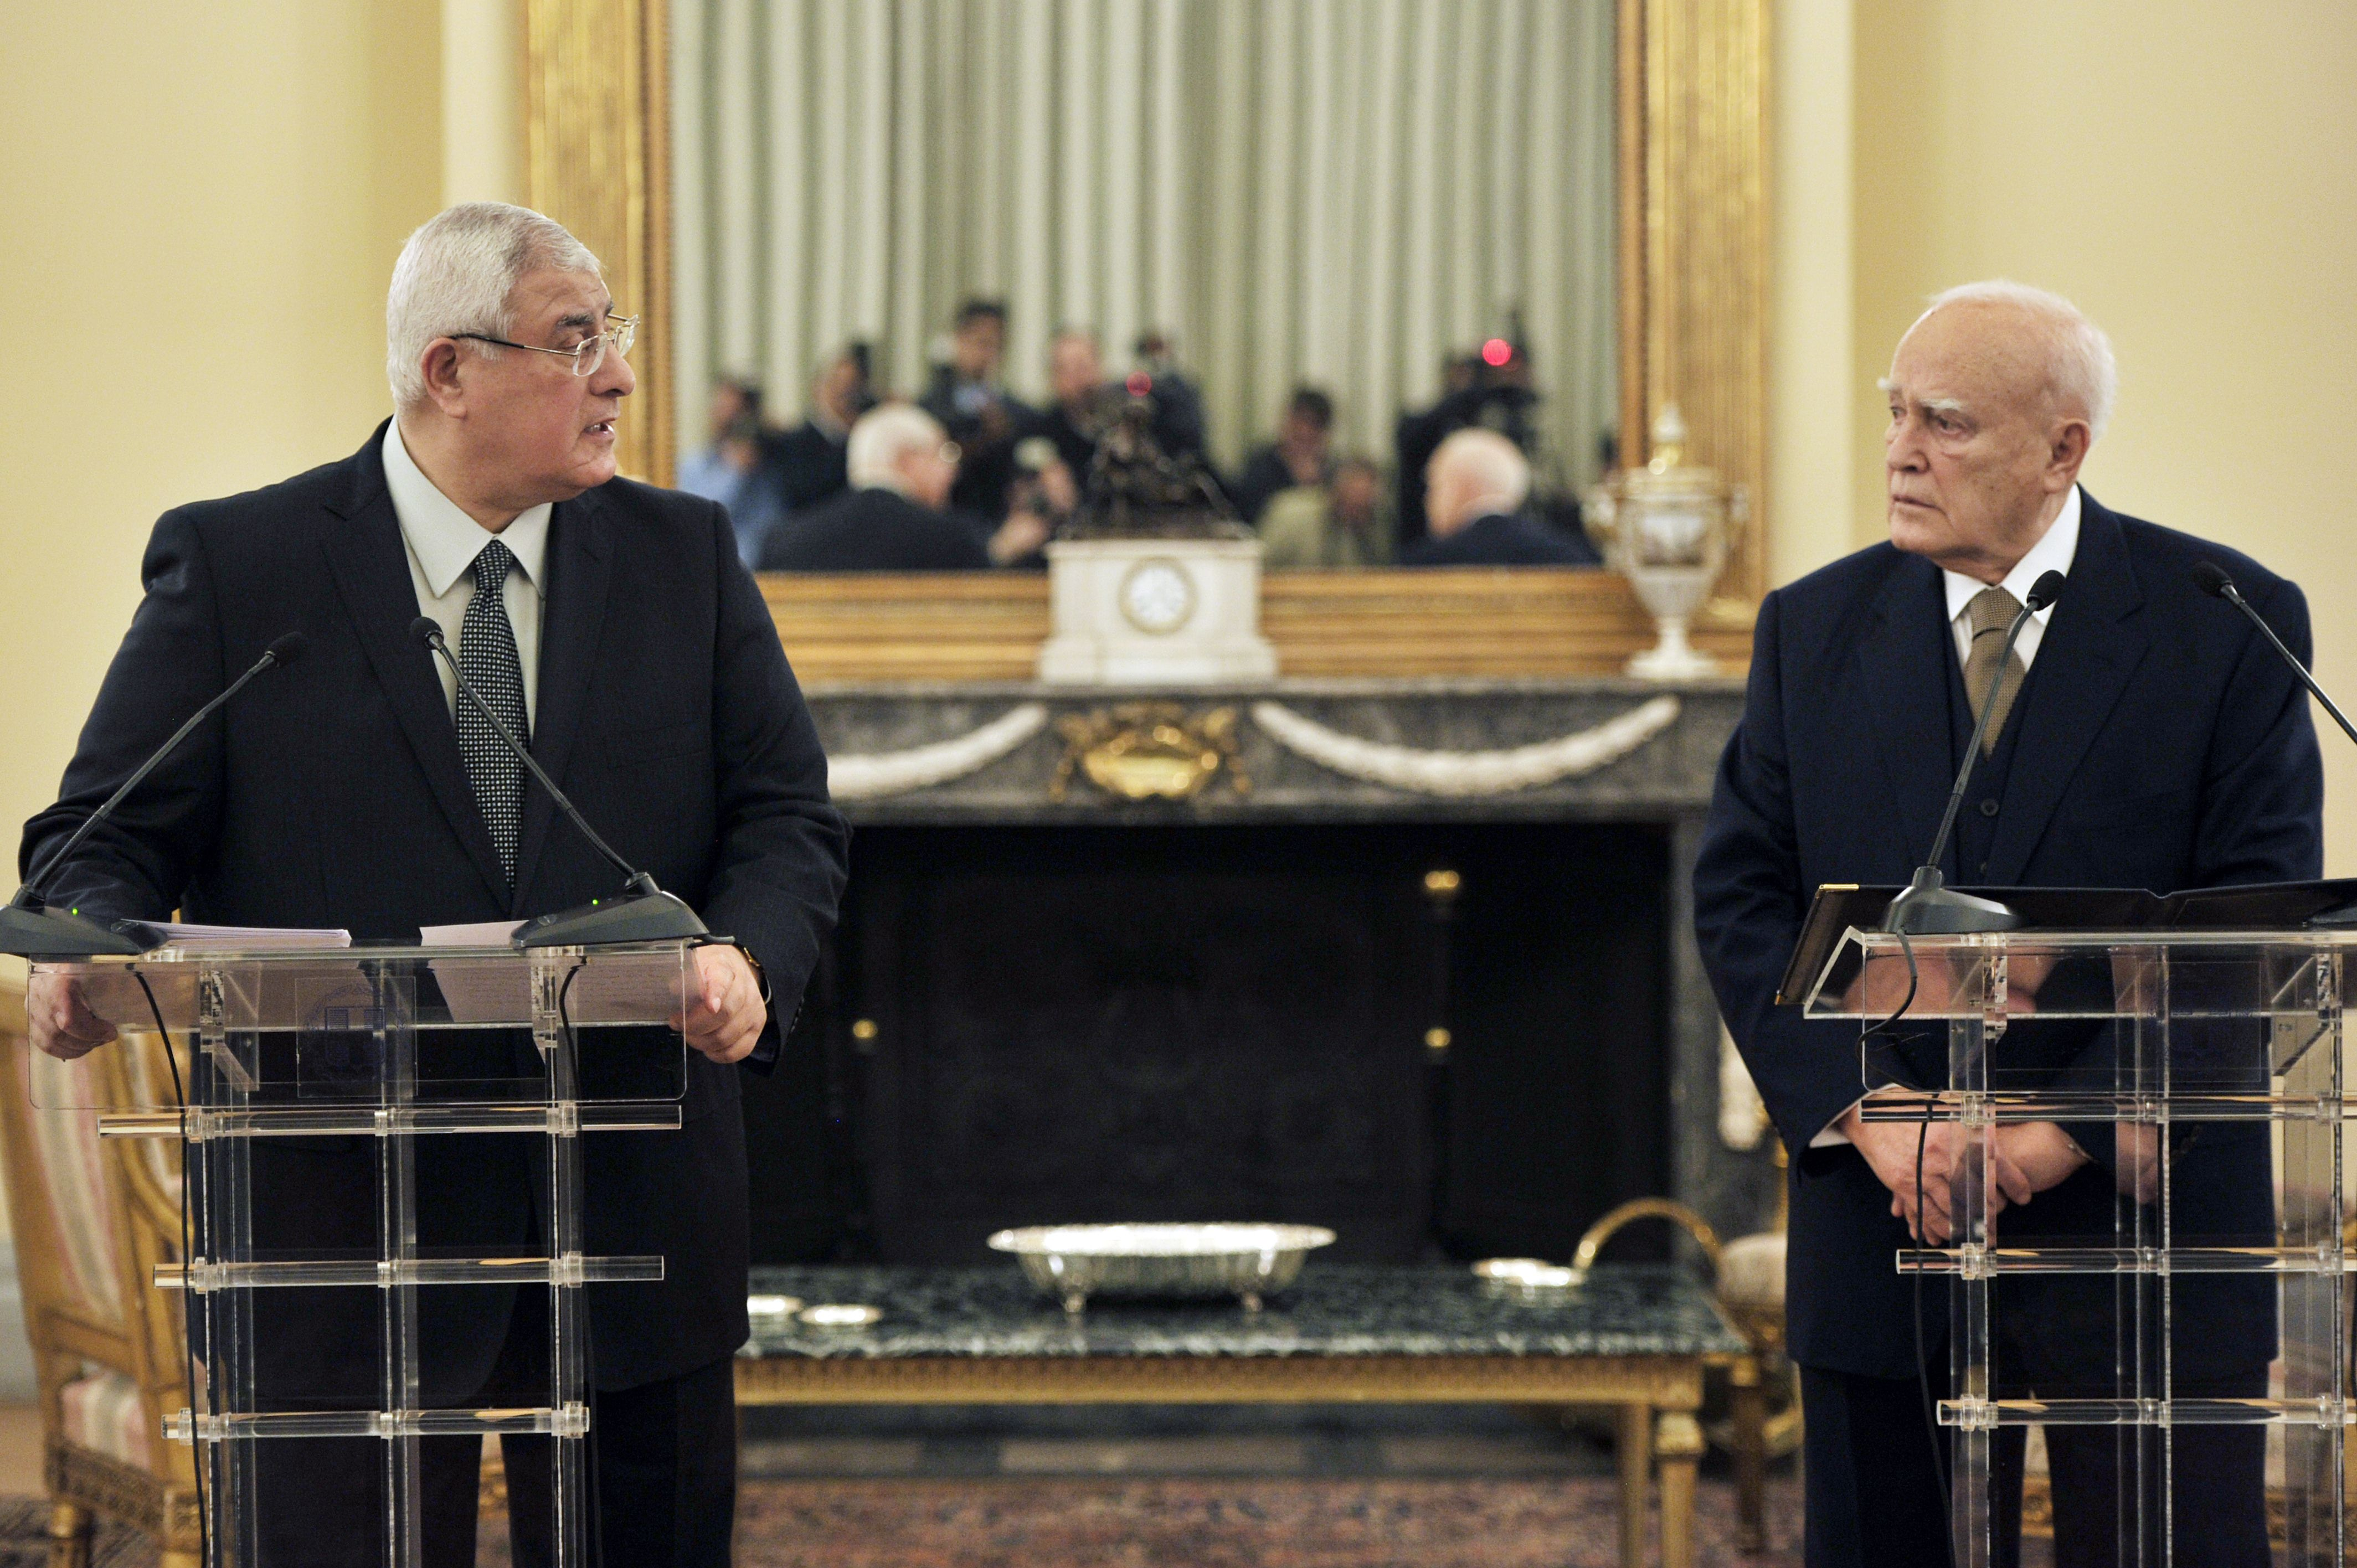 Interim President of Egypt , Adly Mansour (L)  and  Greek president Carolos Papoulias make statements to the press after their talks at the Presidental palace   in Athens on January 20, 2014. The Egyptian president arrived in Athens for a working visit.   (AFP PHOTO / LOUISA GOULIAMAKI)